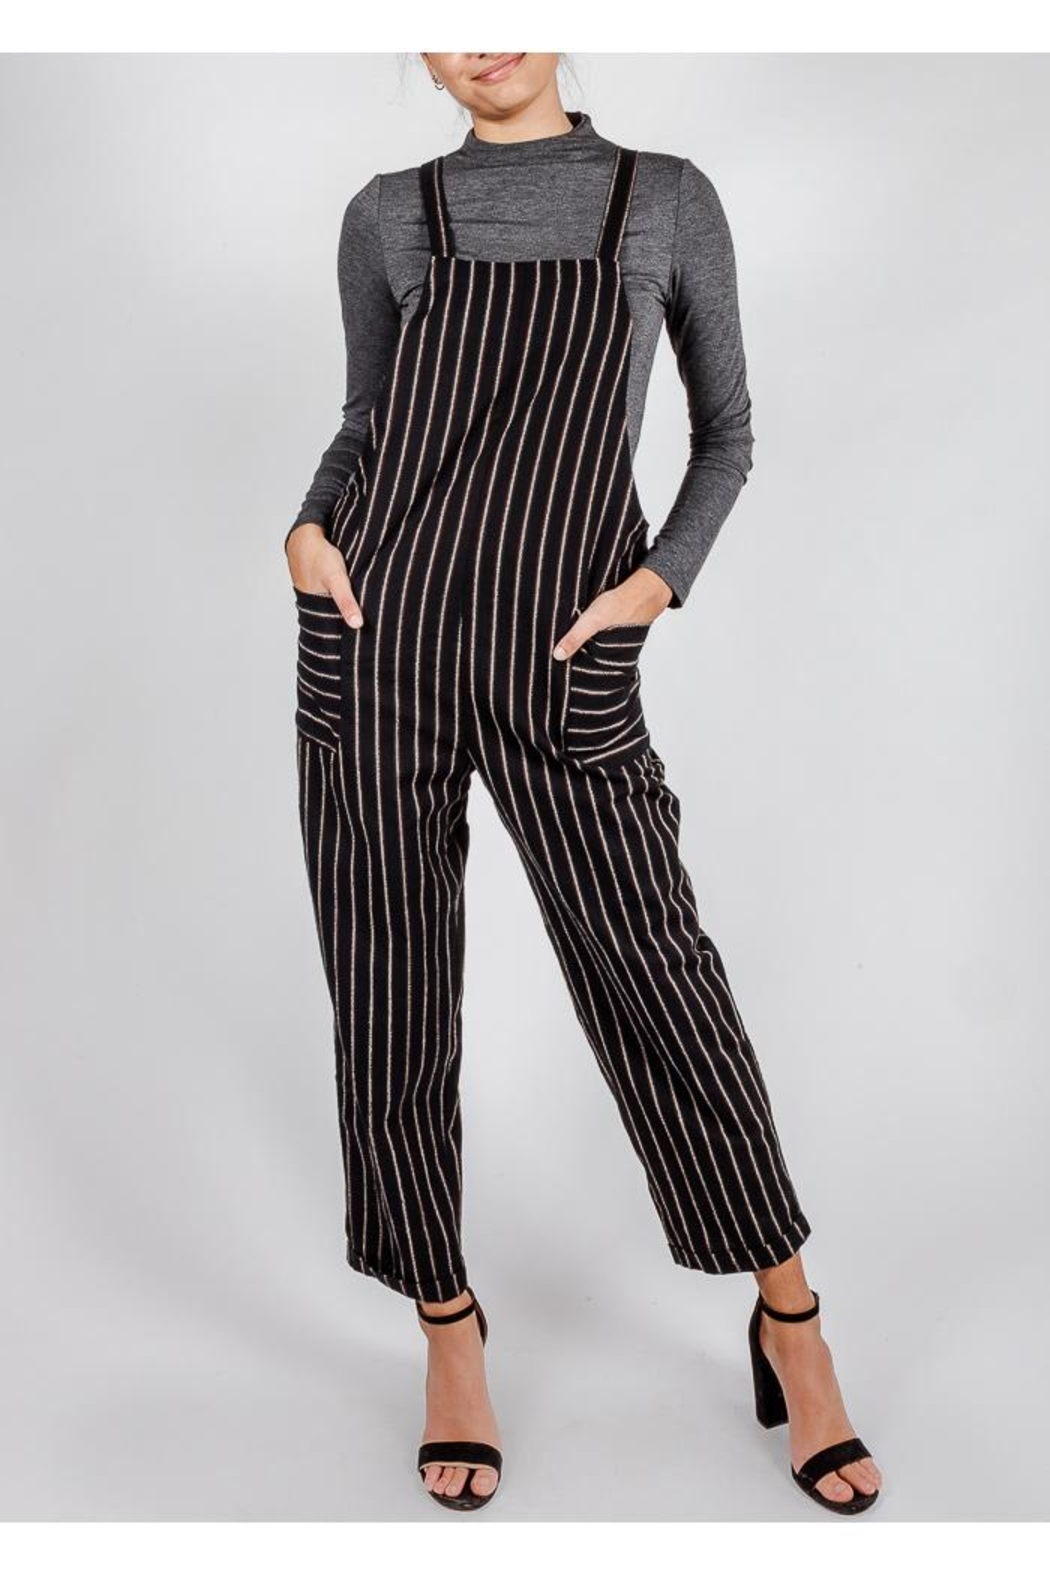 All In Favor Black Striped Slouchy-Overalls - Front Full Image